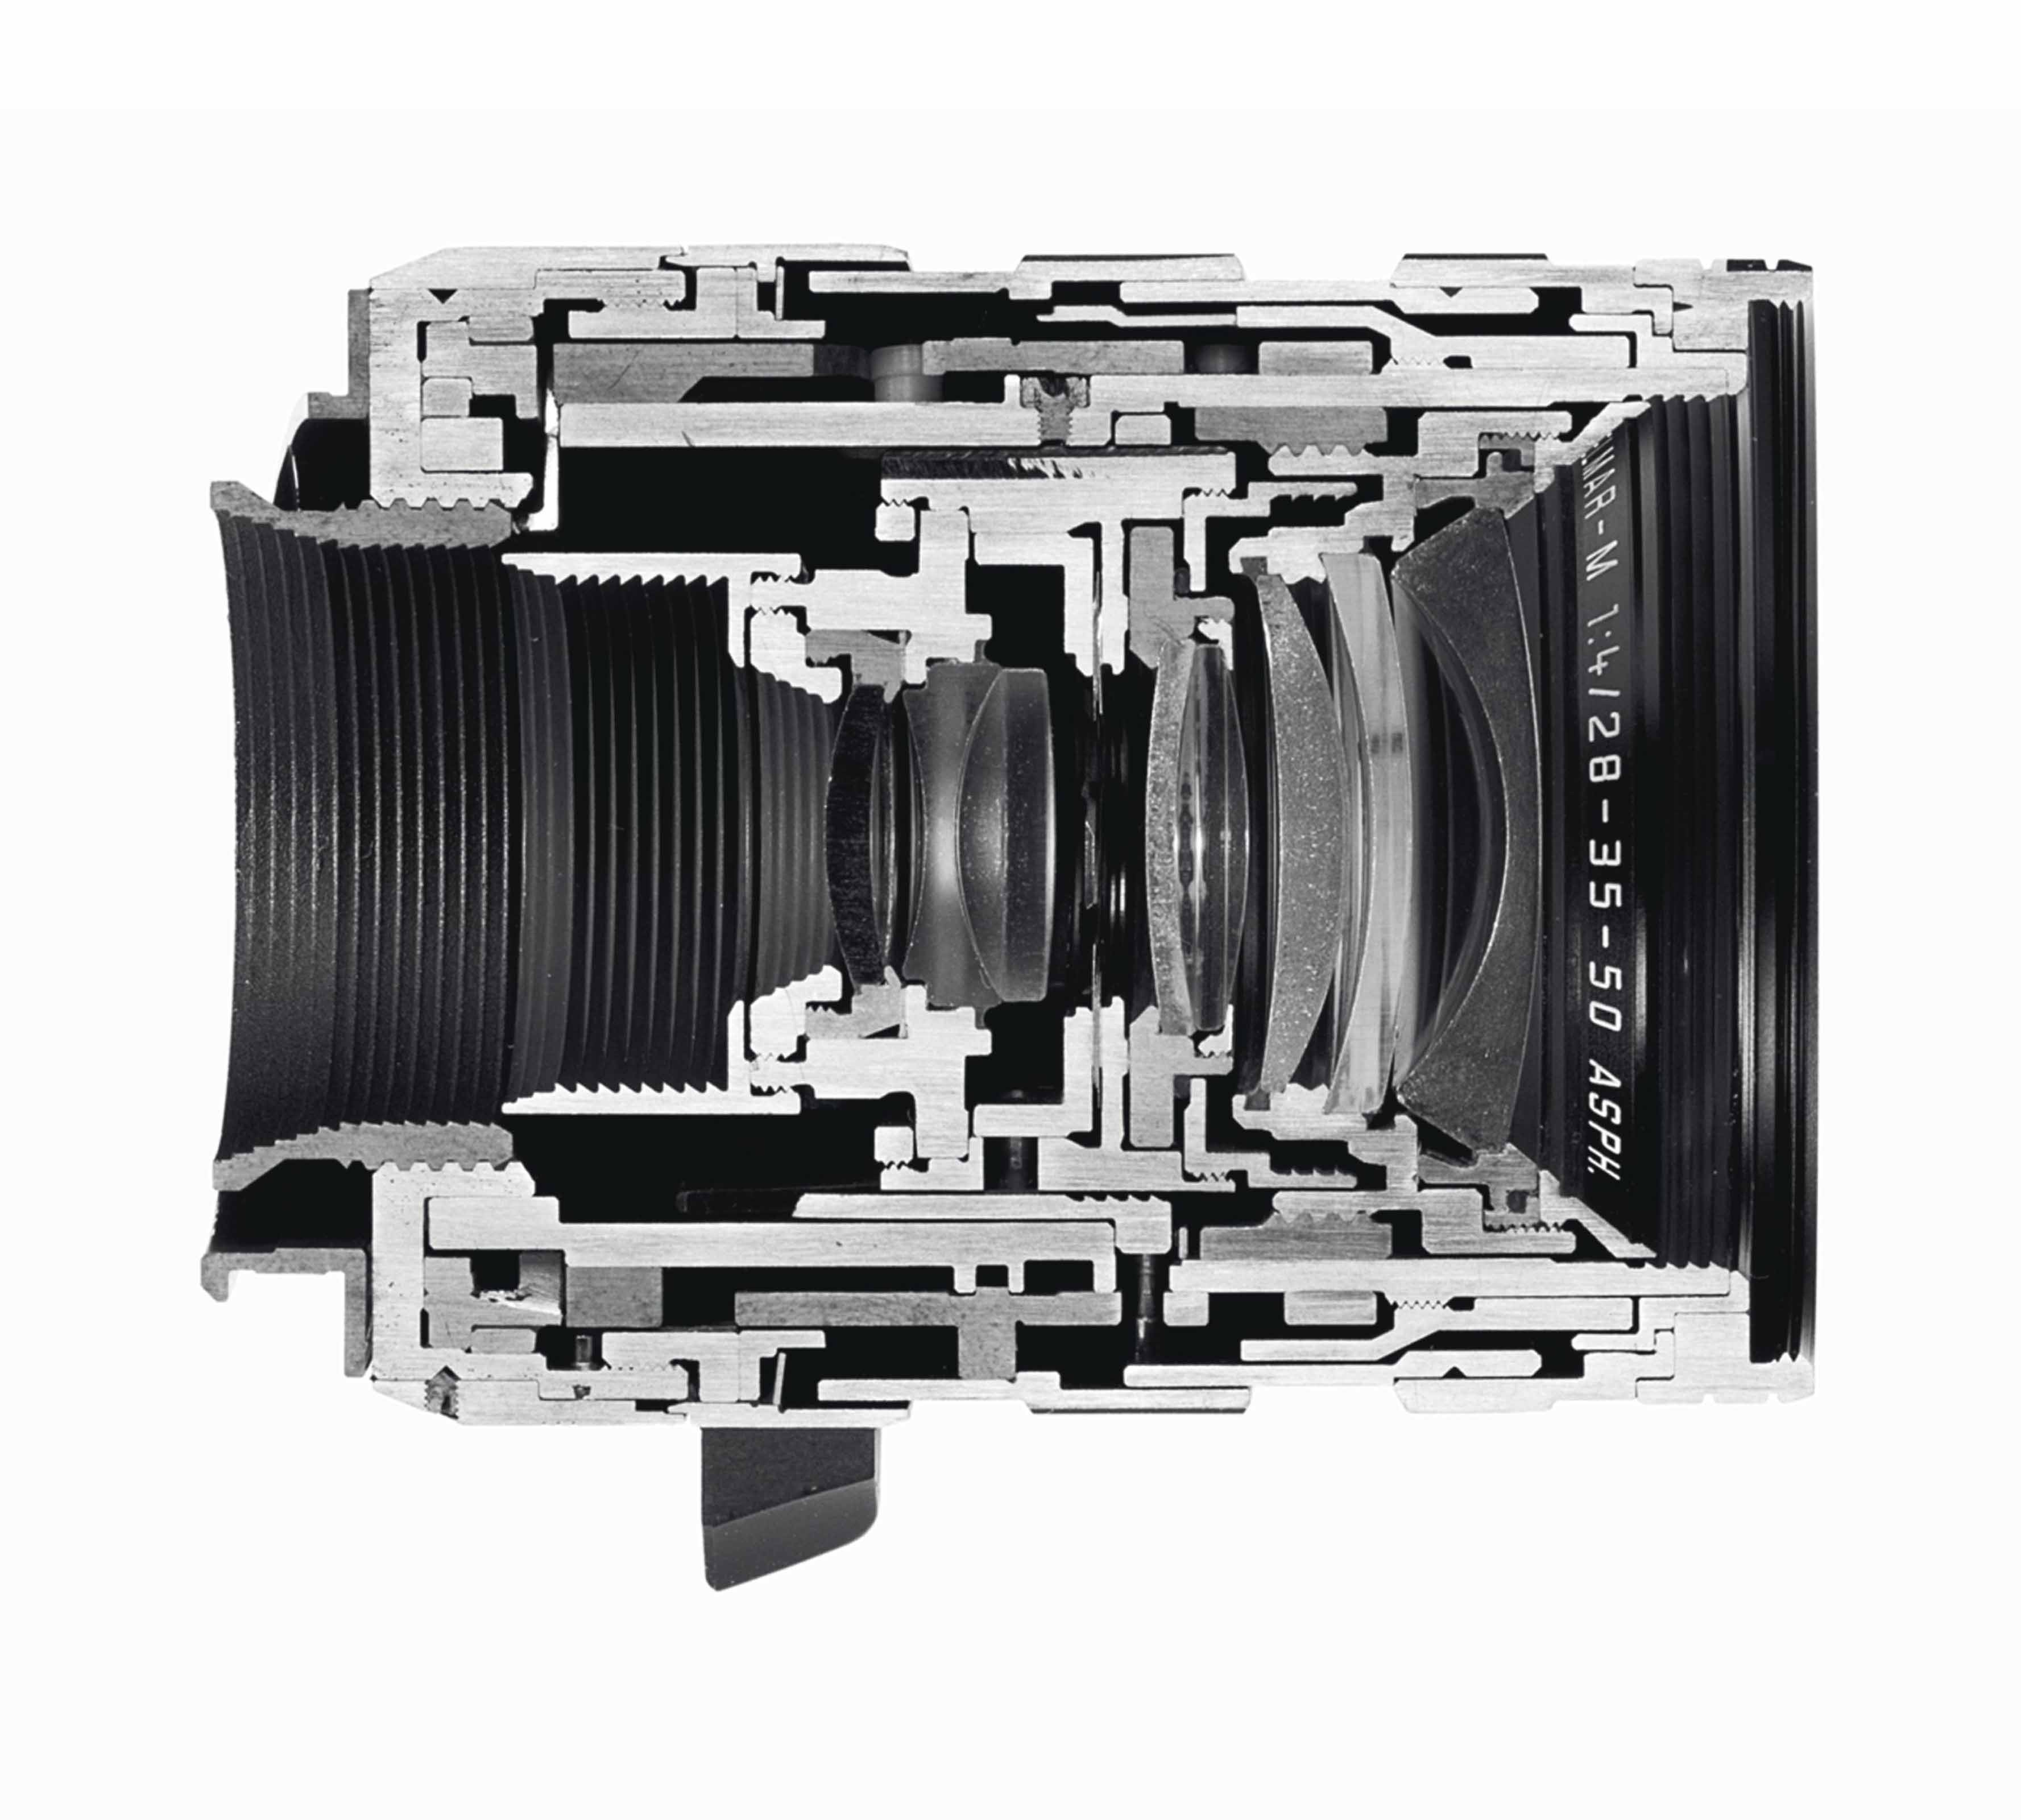 Cutaway of a LEICA TRI-ELMAR-M 28-35-50 mm f/4 ASPH. Angle of view: Focal lenght 28 mm: 75°, 65°, 46° Focal length 35 mm: 63°, 54°, 38° Focal length 50 mm: 47°, 40°, 27° Optical design: 8 elements in 6 Aperture: f/4 (largest) f/22 (smallest) Scale: combined meter/feet-increments Leica M quick-change bayonet Focusing range: 1m to Infinity Smallest object field: Focal length 28 mm: 750 x 1130 mm Focal length 35 mm: 620 x 930 mm Focal length 50 mm: 430 x 650 mm Highest reproduction ratio: Focal length 28 mm: 1:31 Focal length 35 mm: 1:26 Focal length 50 mm: 1:18 Lens produced between: 1998 and 2007 Date of the cut: unknown Fotostudio Axel Gnad, Düsseldorf, February 13, 2009